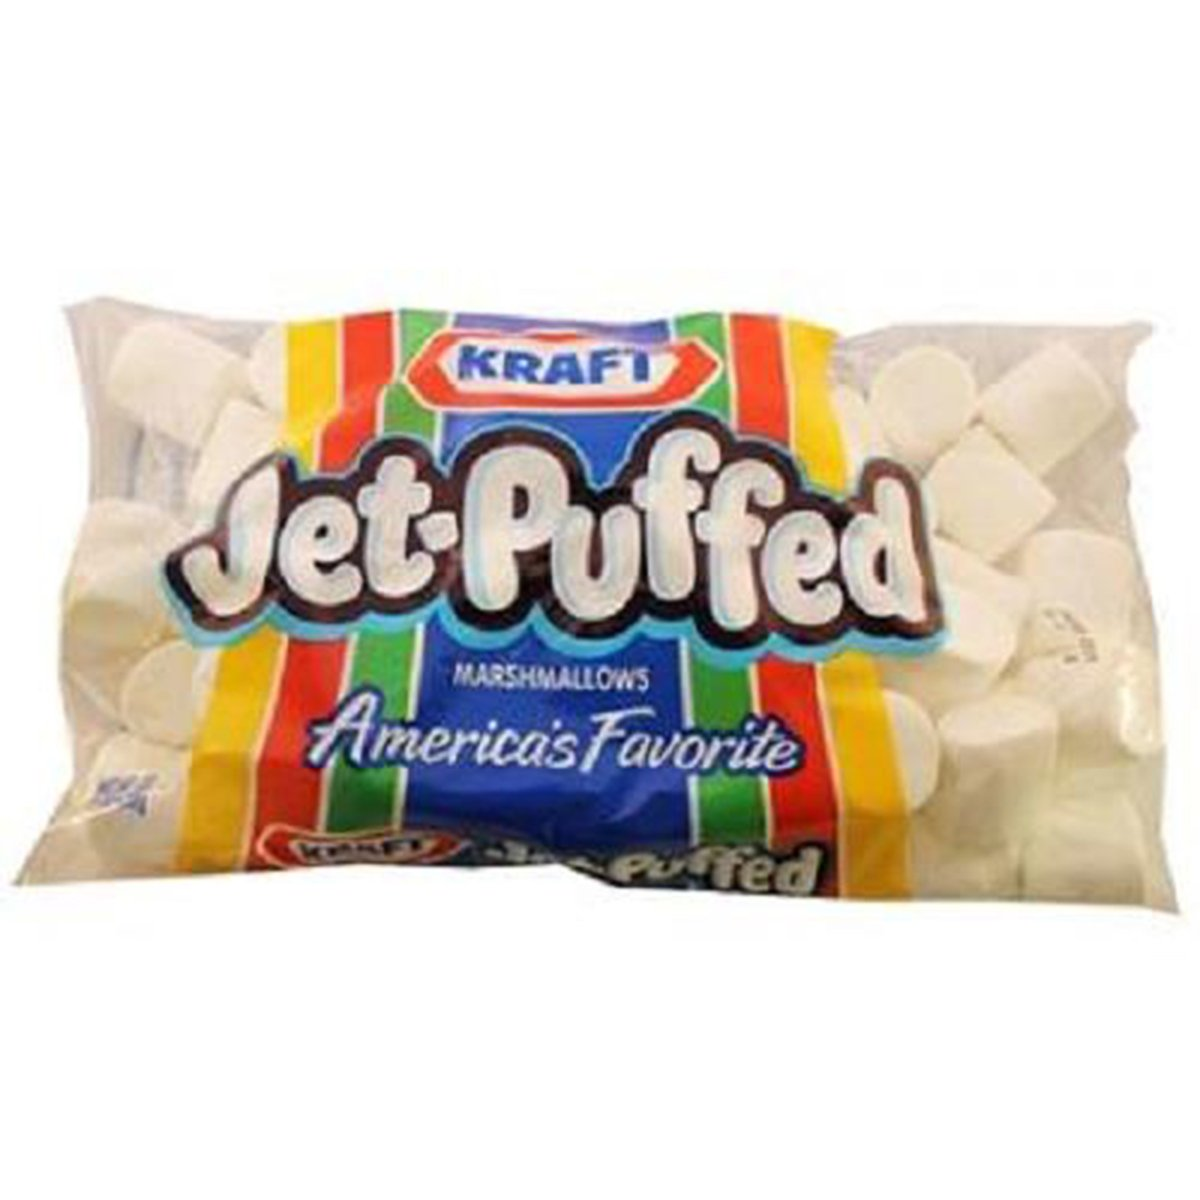 Product Of Kraft Jet-Puffed, Marshmallows, Count 1 - Coco & Chocolate Mixes / Grab Varieties & Flavors